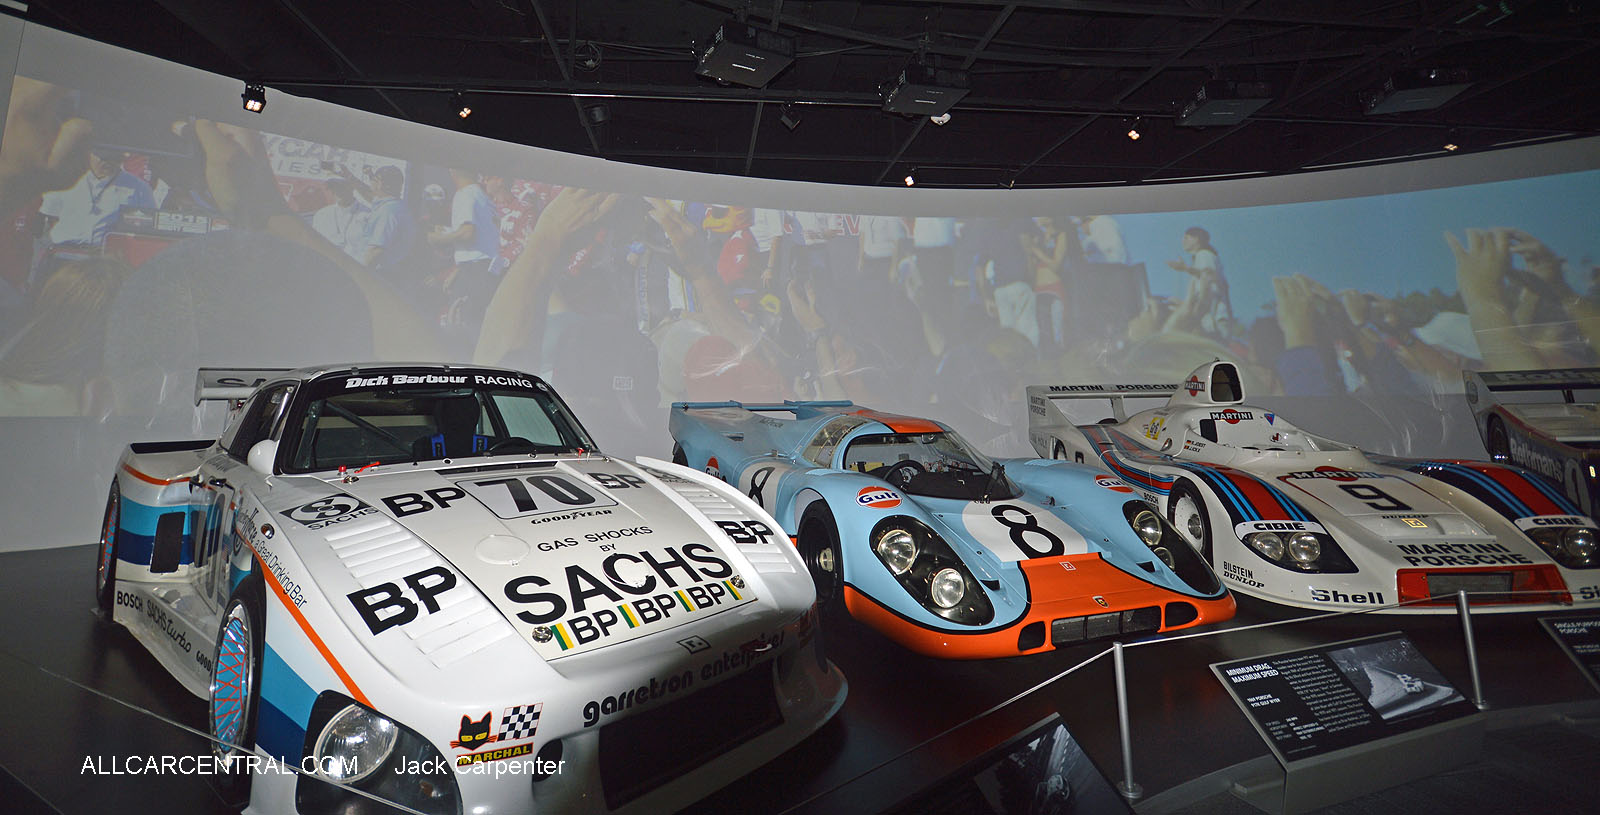 Porsche 935K3 1980 Petersen Automotive Museum 2016 Jack  Carpenter Photo